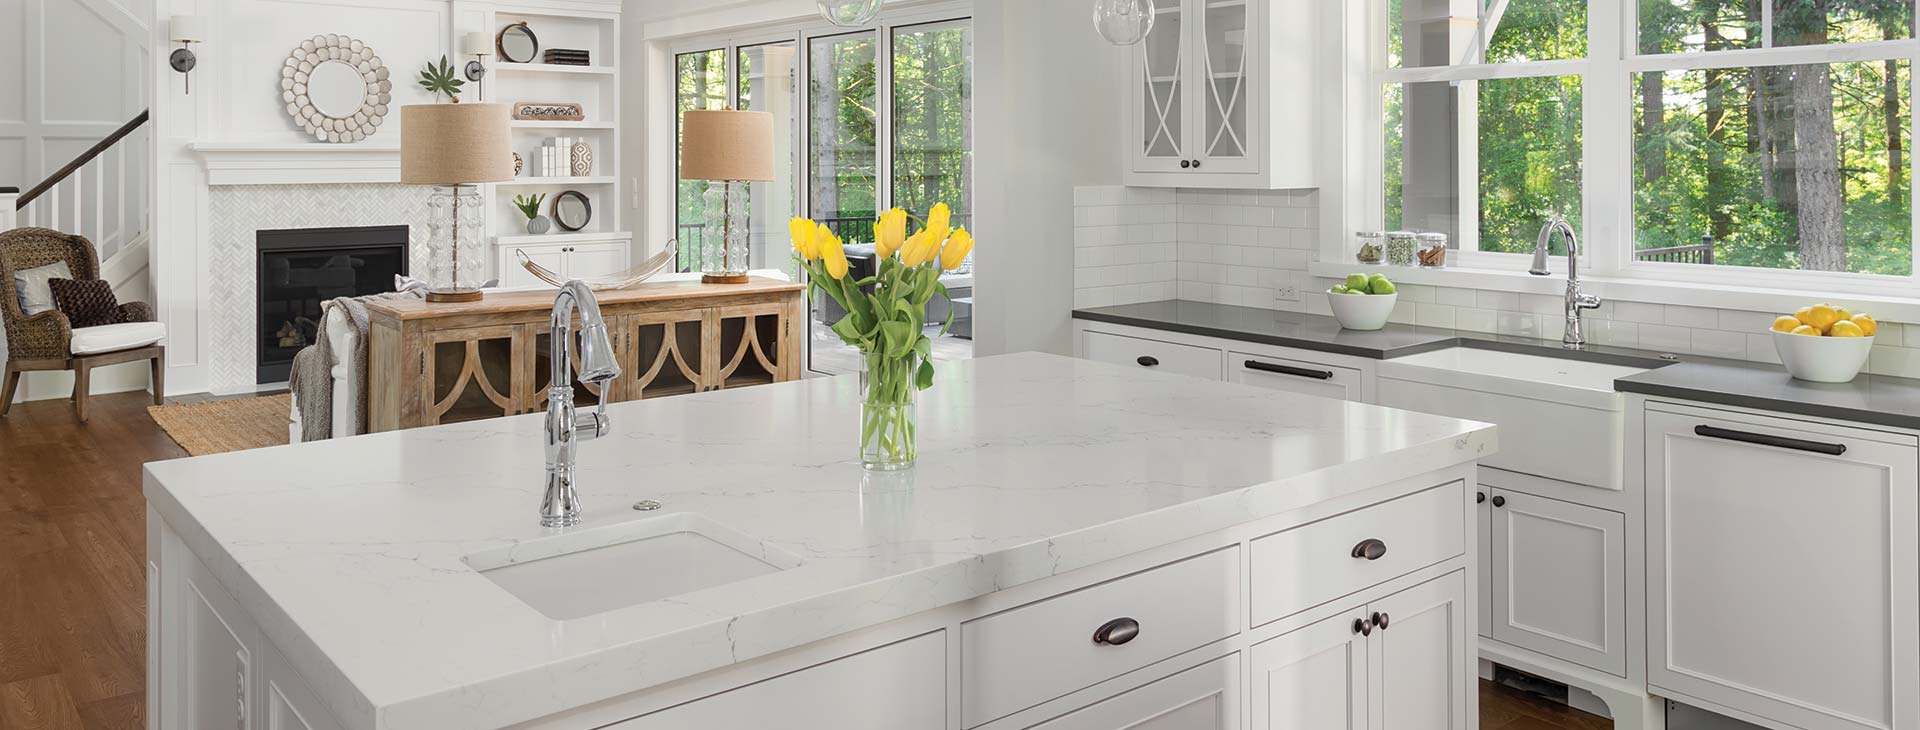 Traditional white kitchen with stainless steel tapware